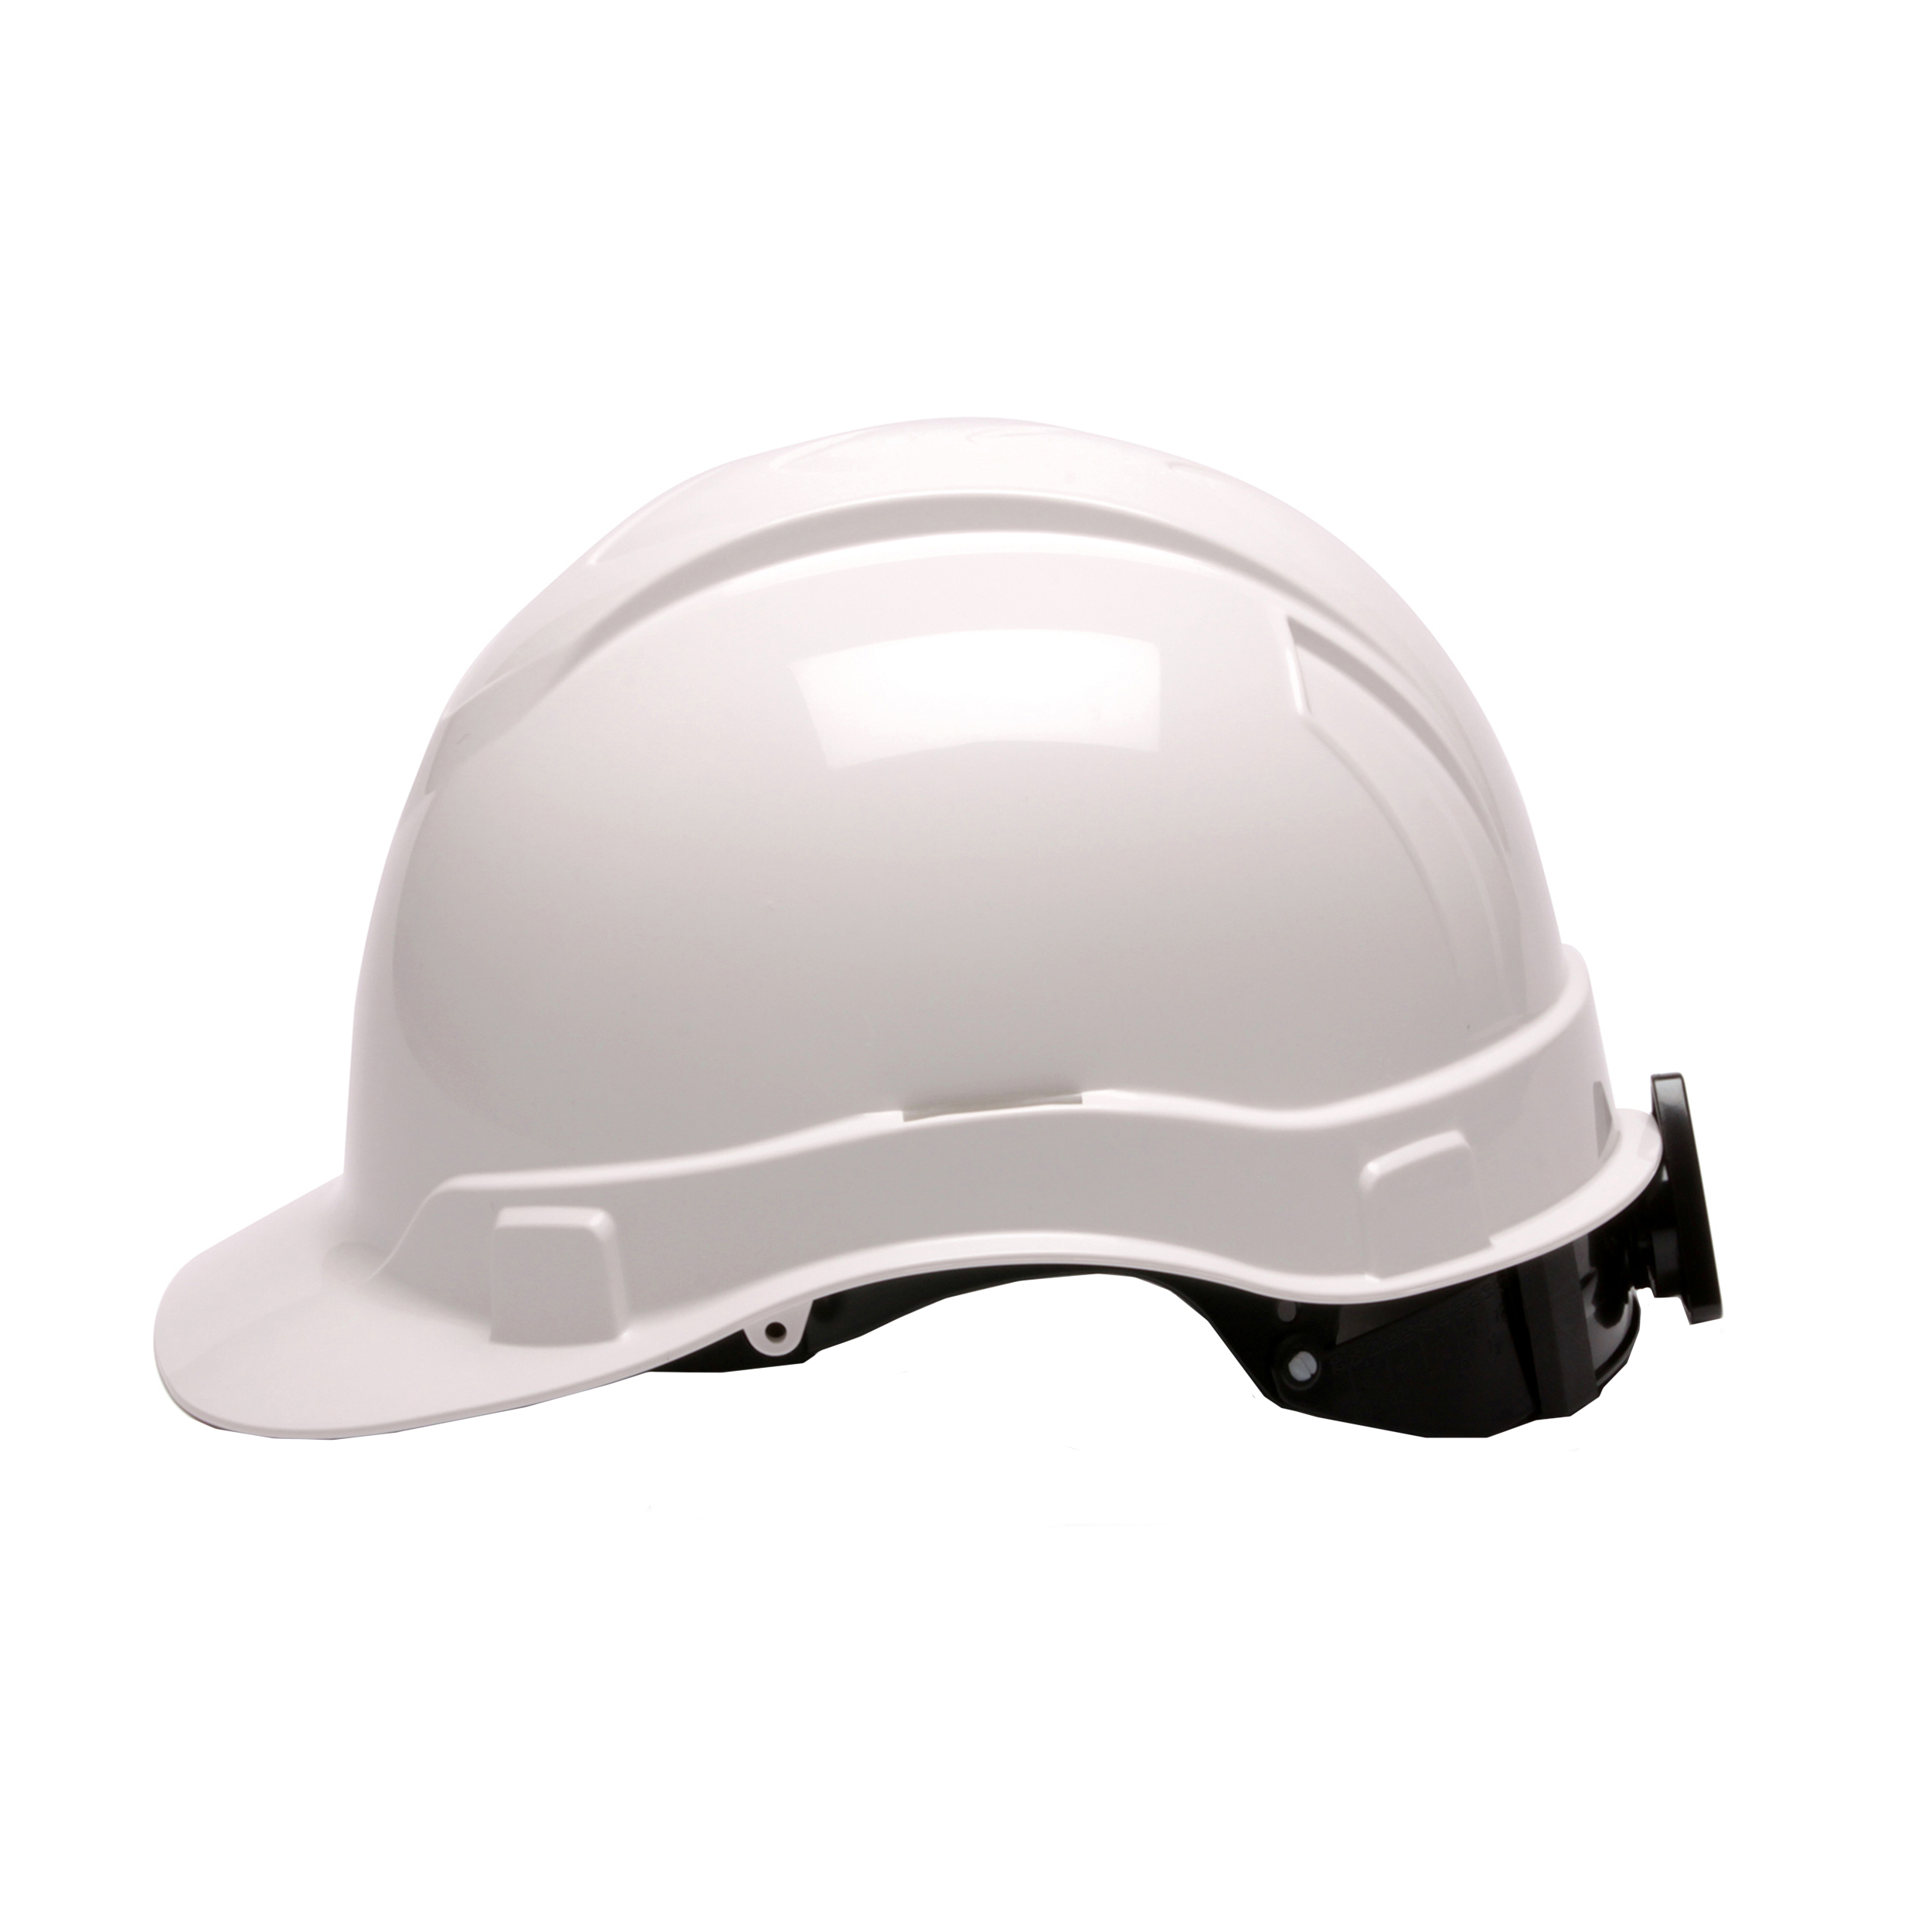 Pyramex Safety Products Ridgeline Cap Style Hard Hat 4 Point Ratchet, White by Pyramex Safety Products